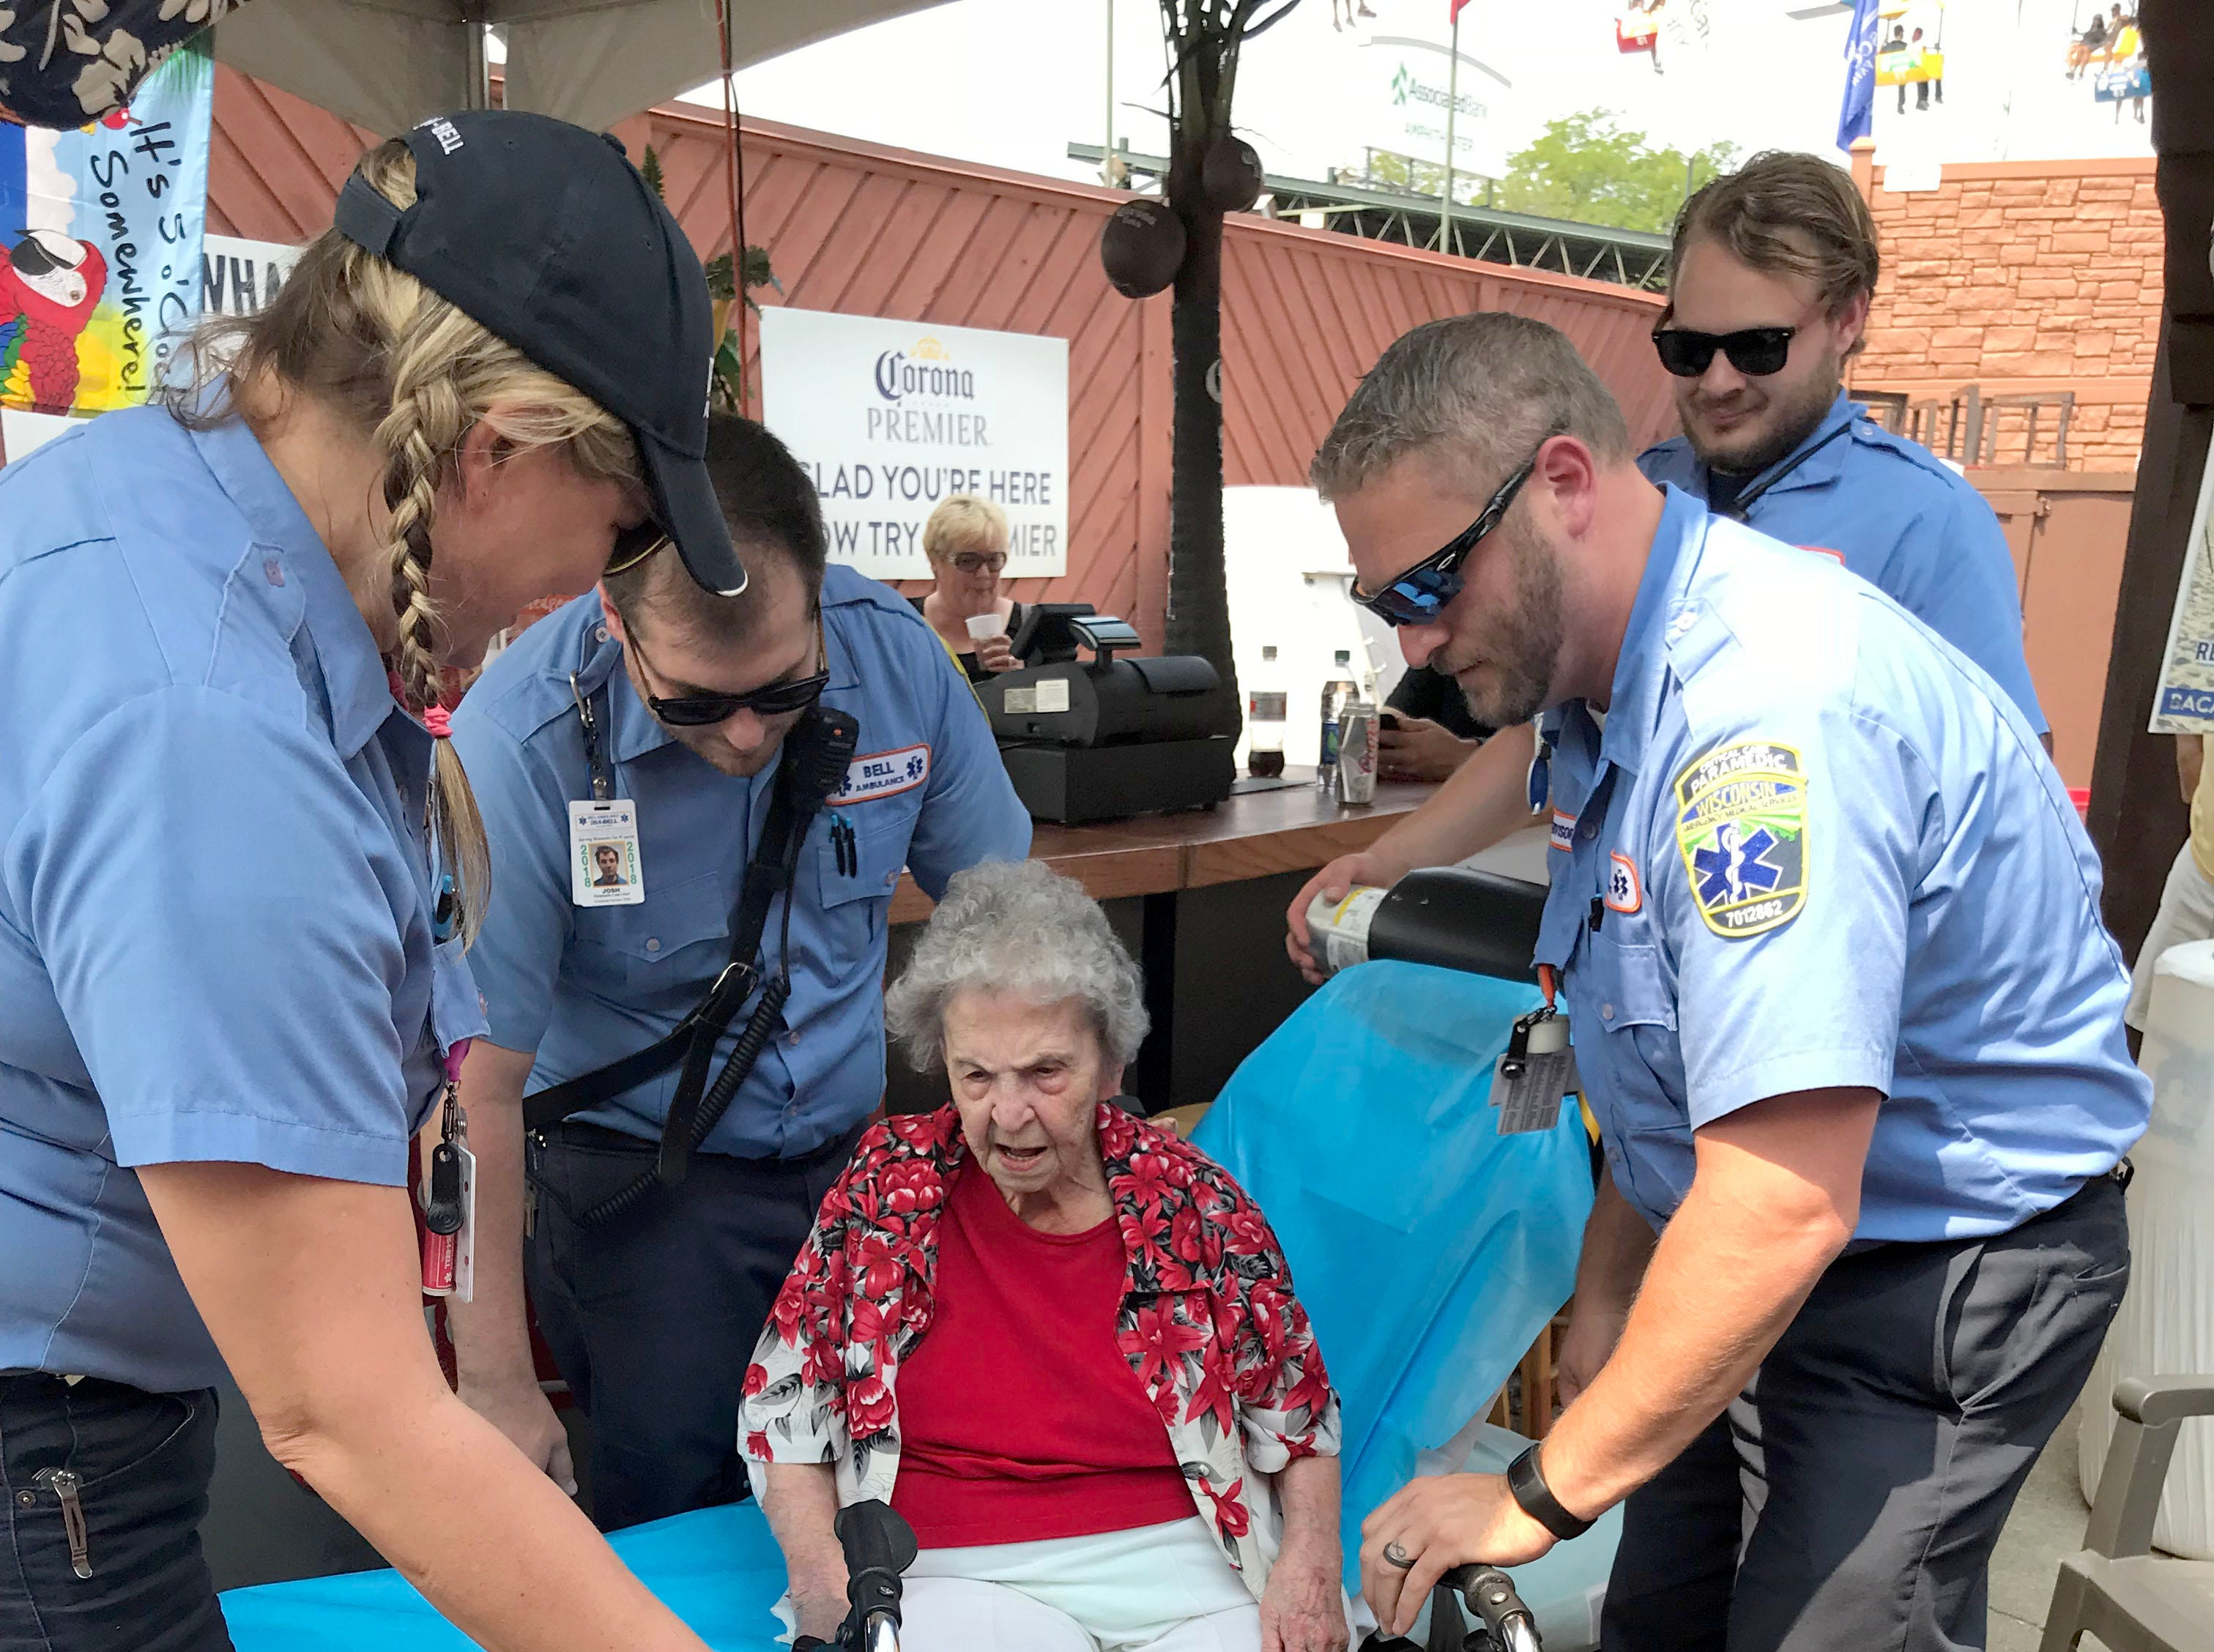 Catherine Krause, 100, is helped off a stretcher and in to a wheeled chair at her son's restaurant, Robert's, at Wisconsin State Fair Sunday afternoon.